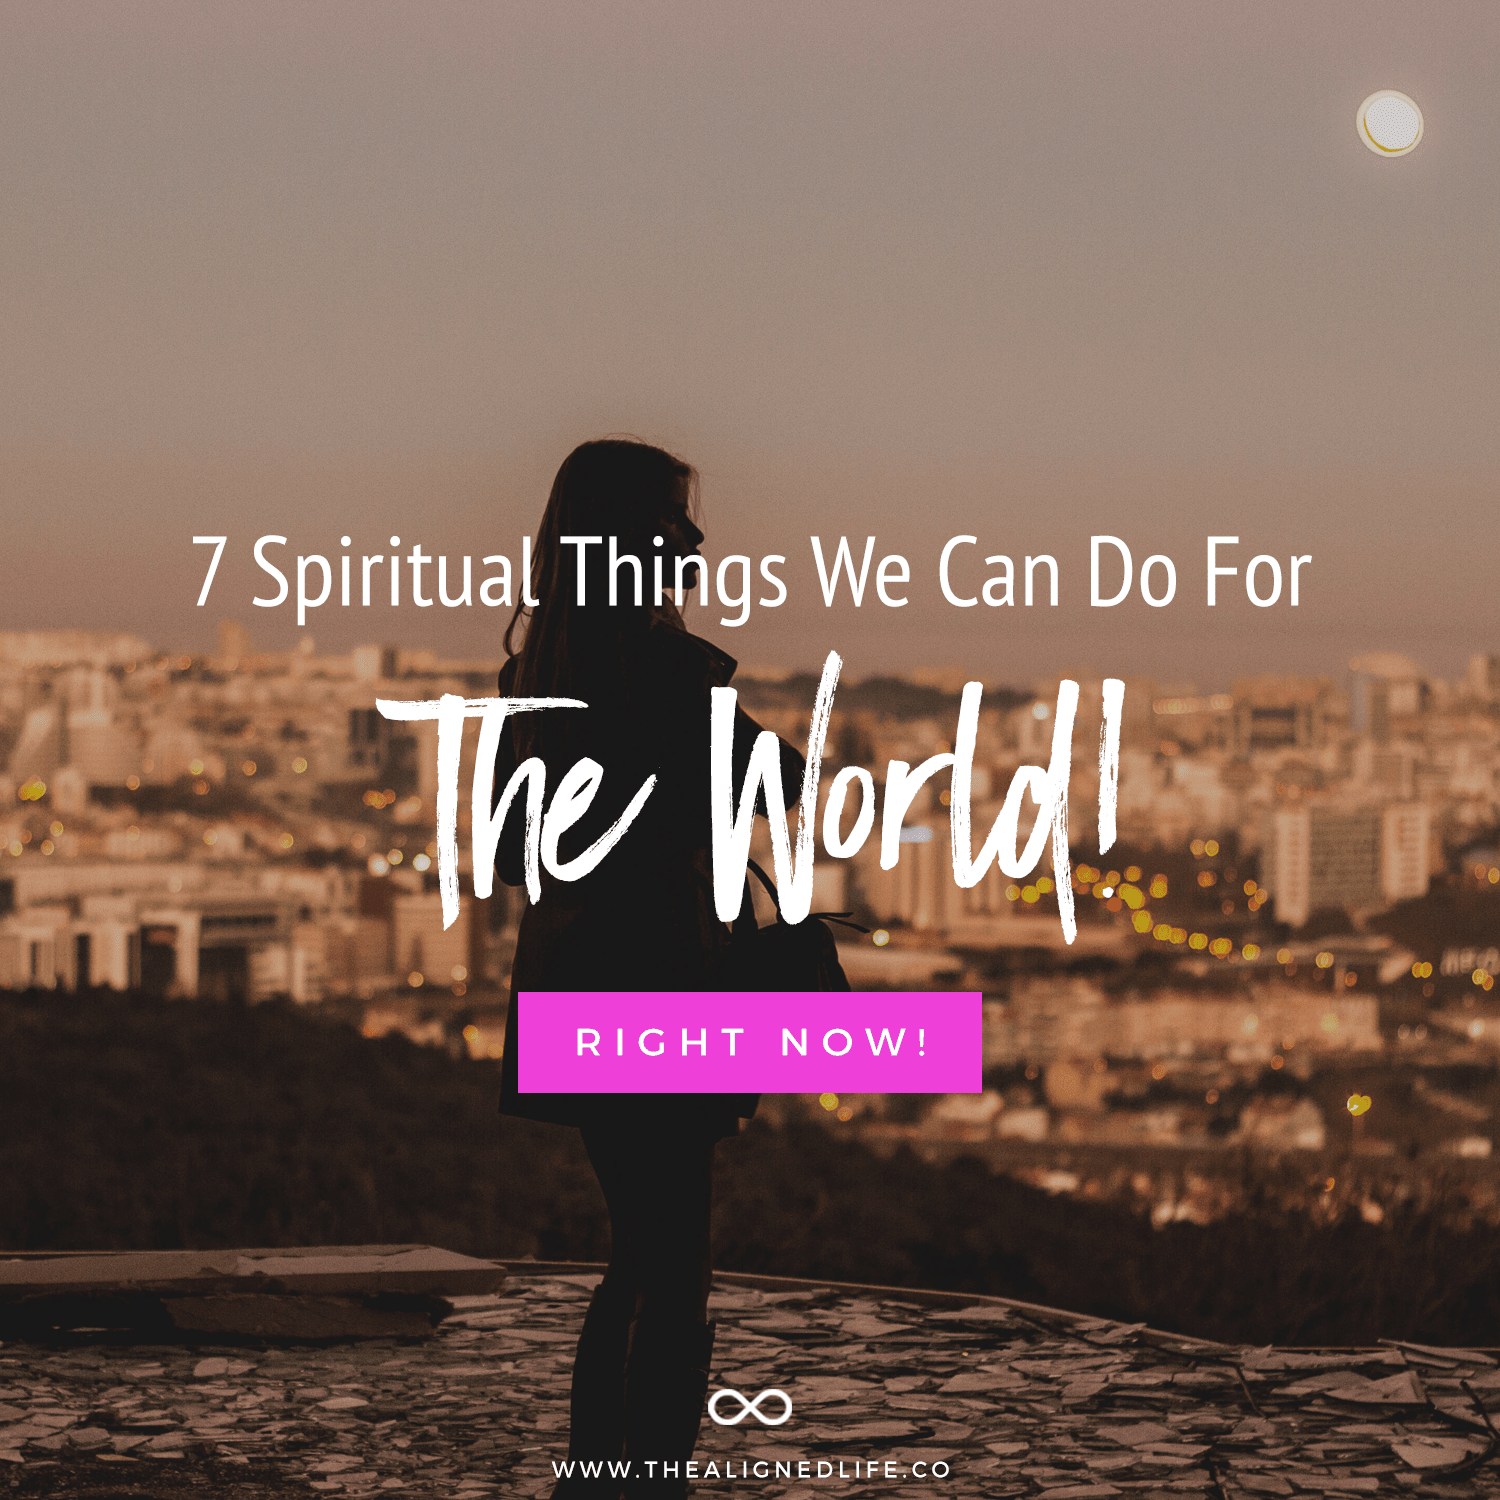 7 Spiritual Things We Can Do For The World Right Now